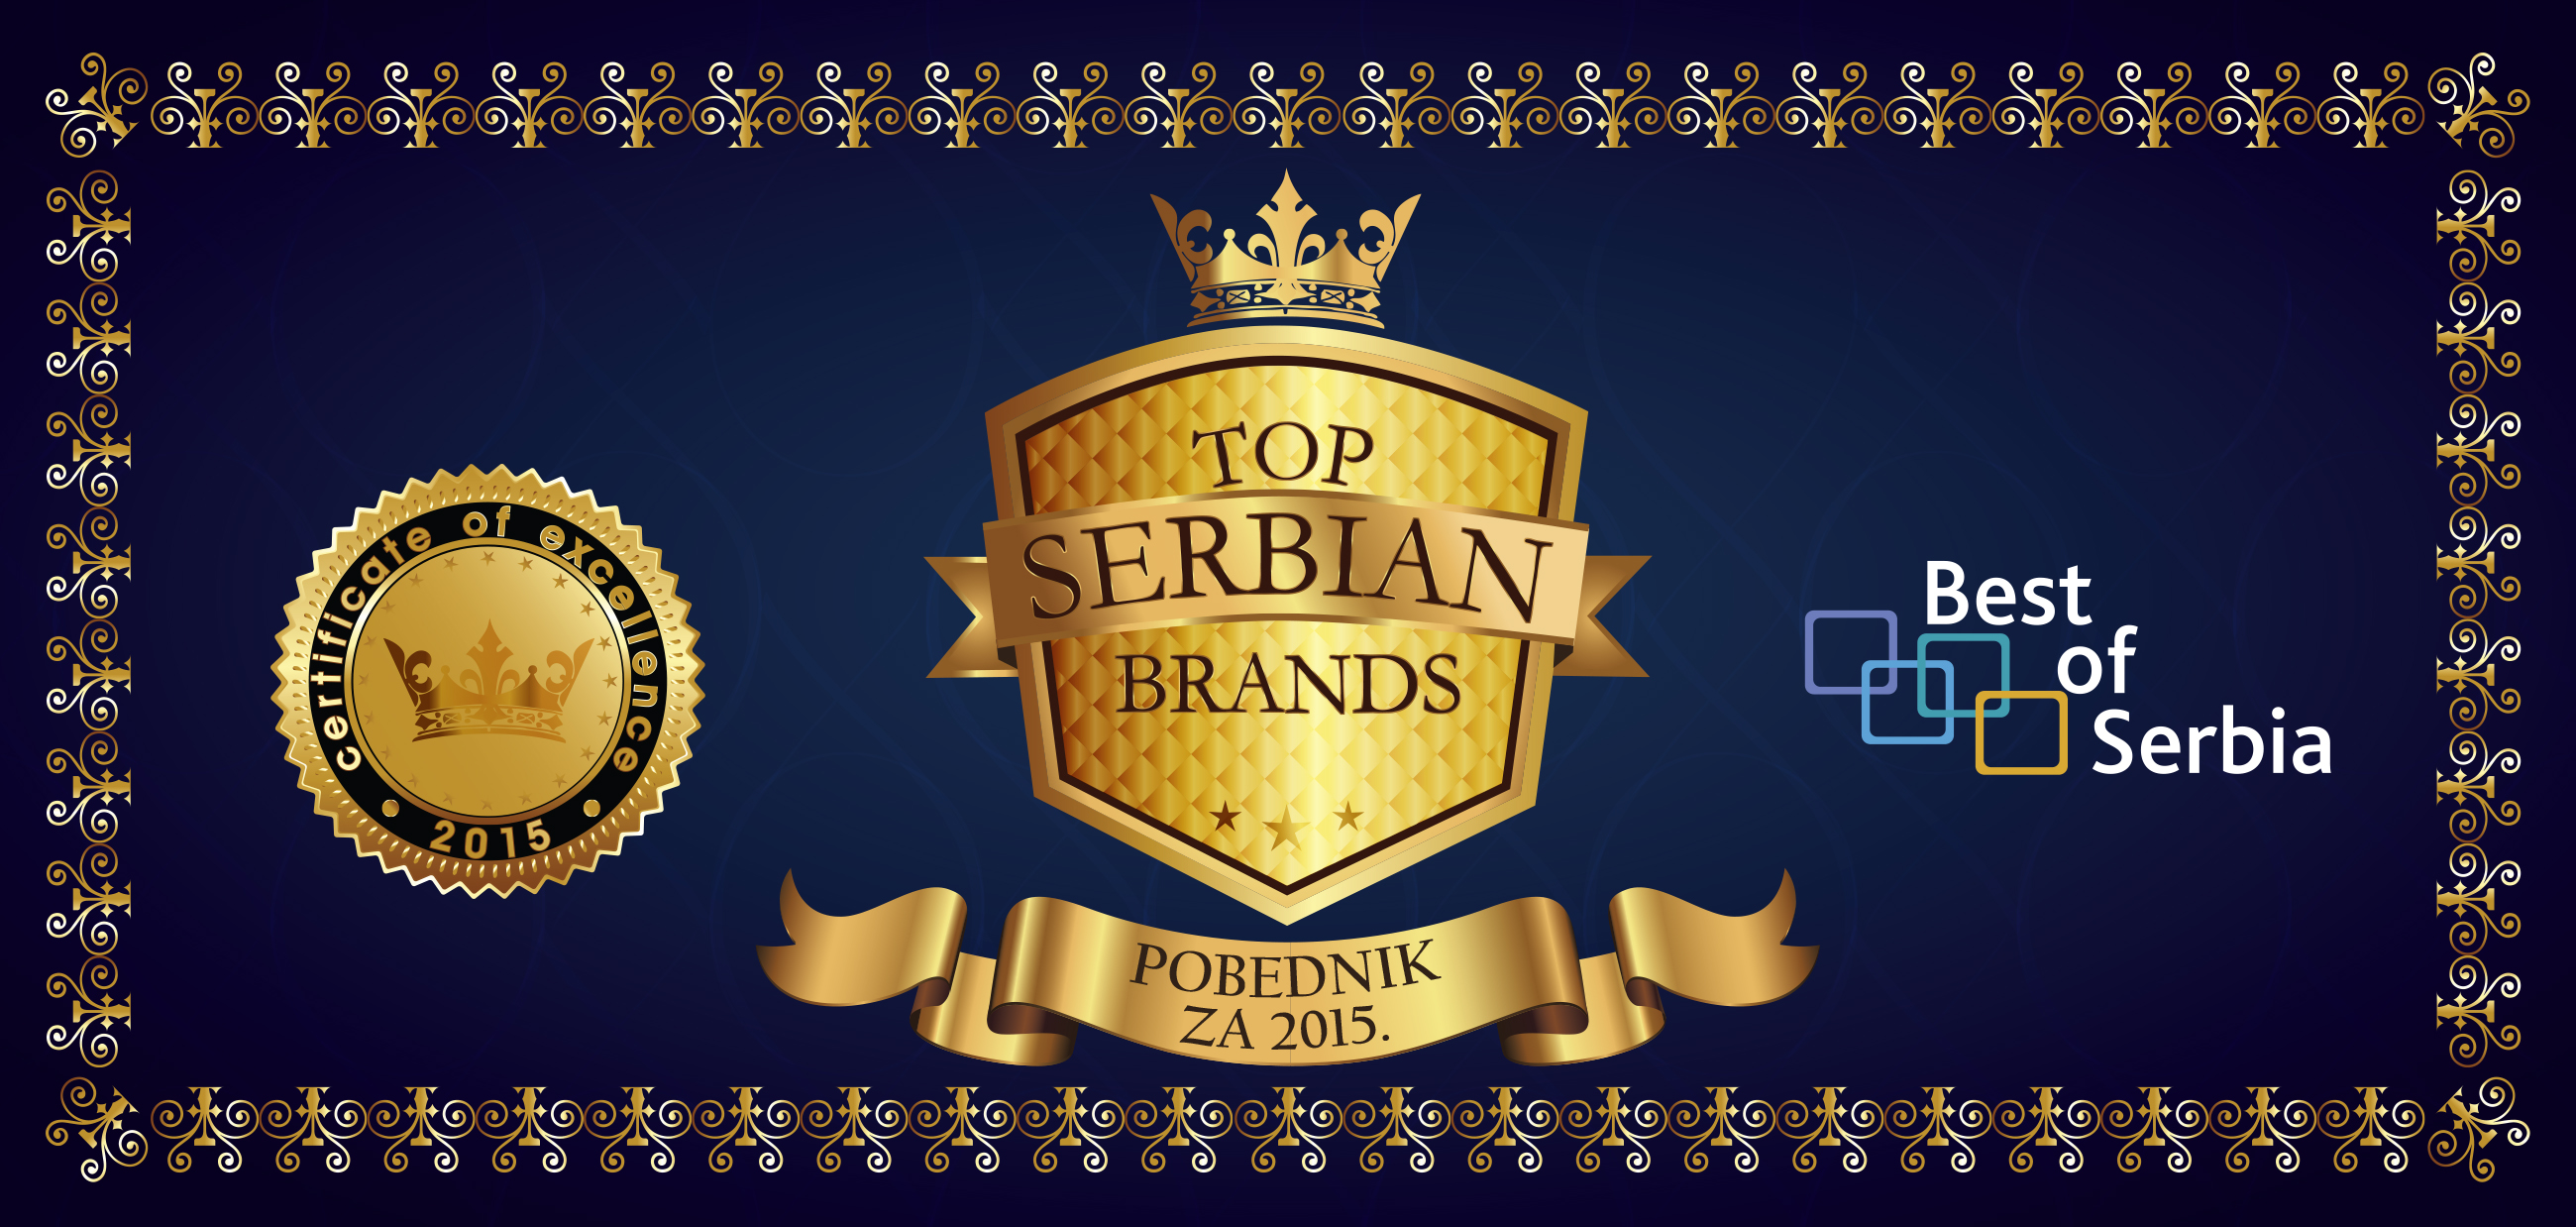 Top Serbian Brands Award Goes to Hemofarm